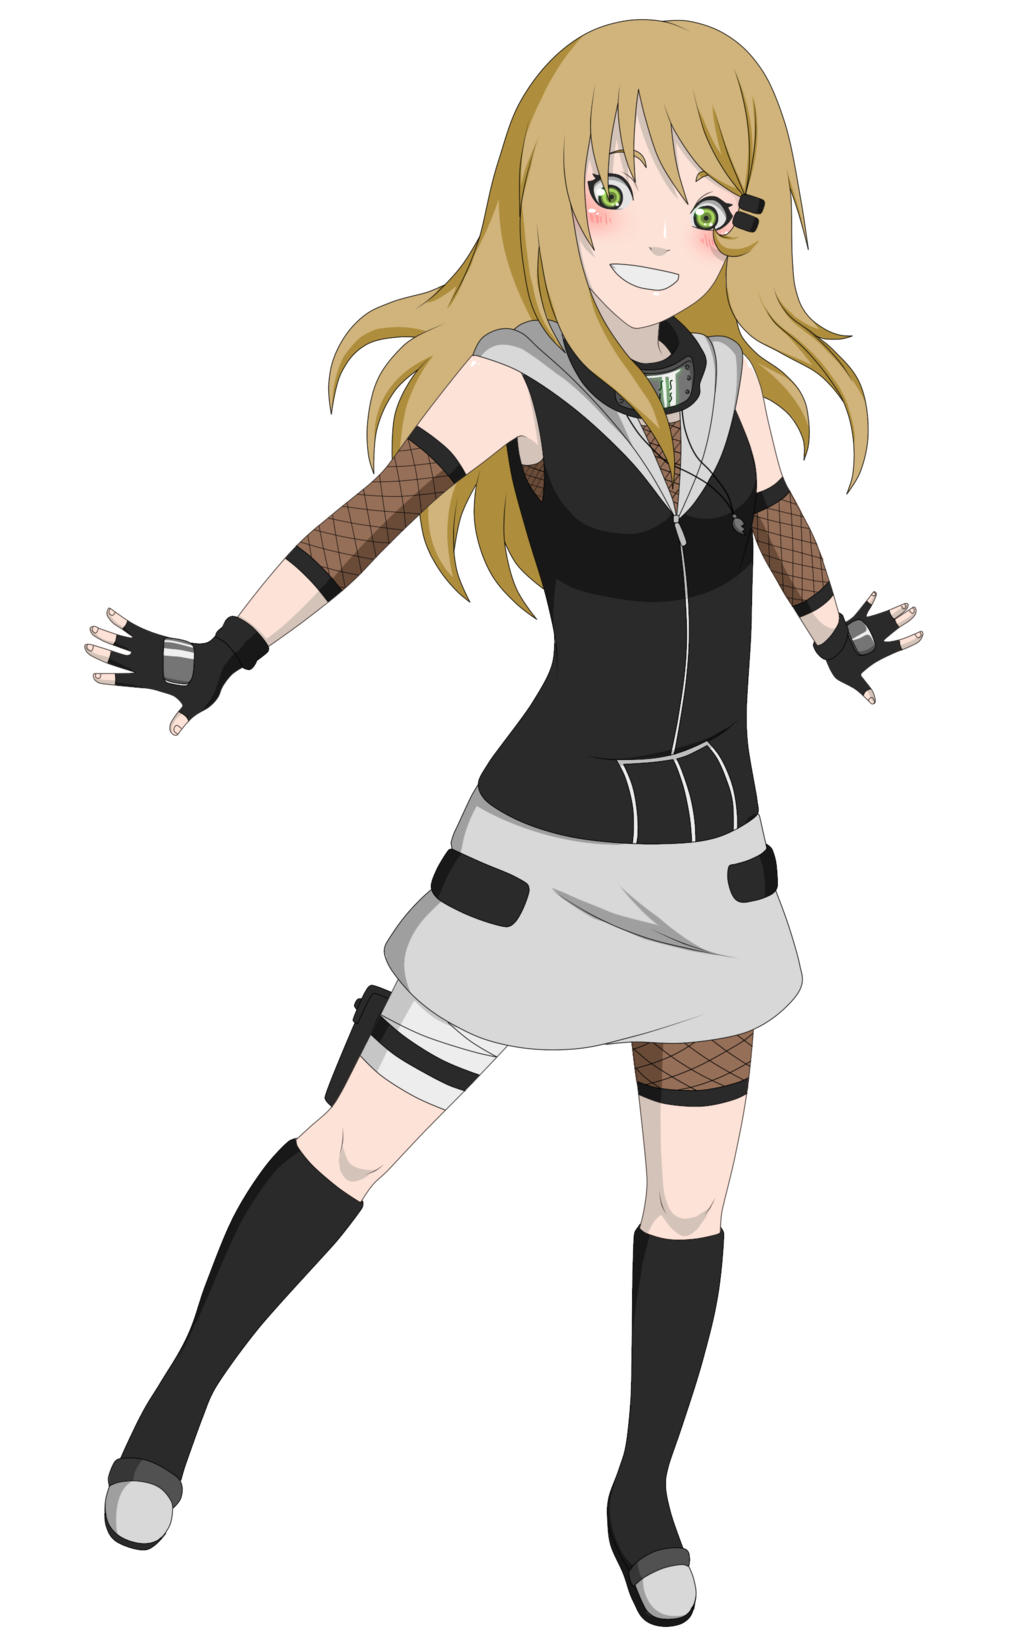 Female Anime Characters 90s : Naruto oc google search … pinteres…